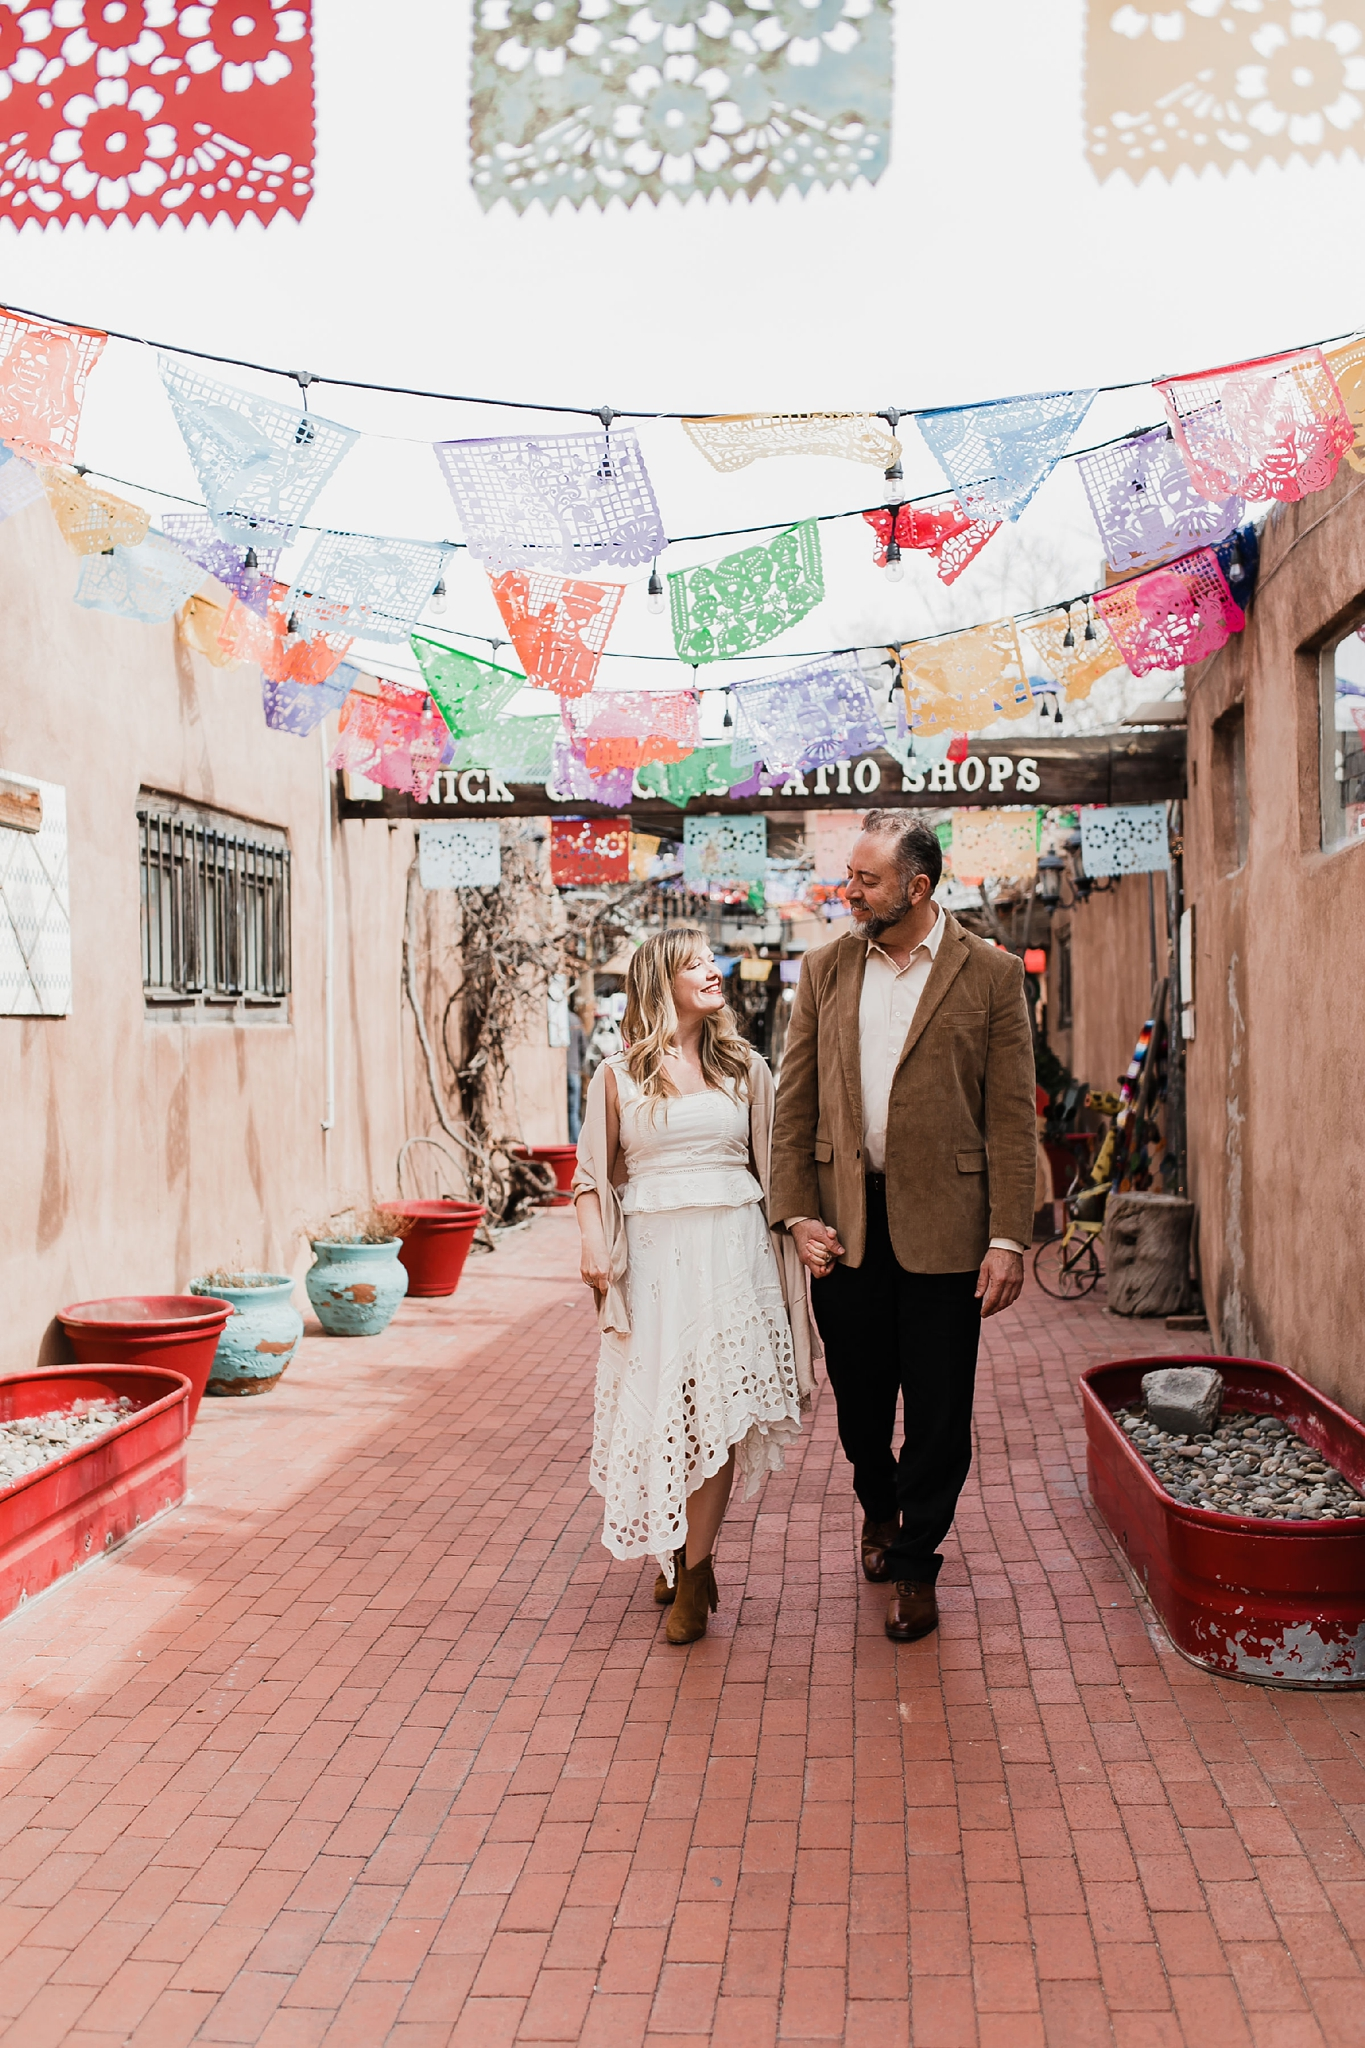 Alicia+lucia+photography+-+albuquerque+wedding+photographer+-+santa+fe+wedding+photography+-+new+mexico+wedding+photographer+-+new+mexico+engagement+-+albuquerque+engagement+-+old+town+engagement_0007.jpg